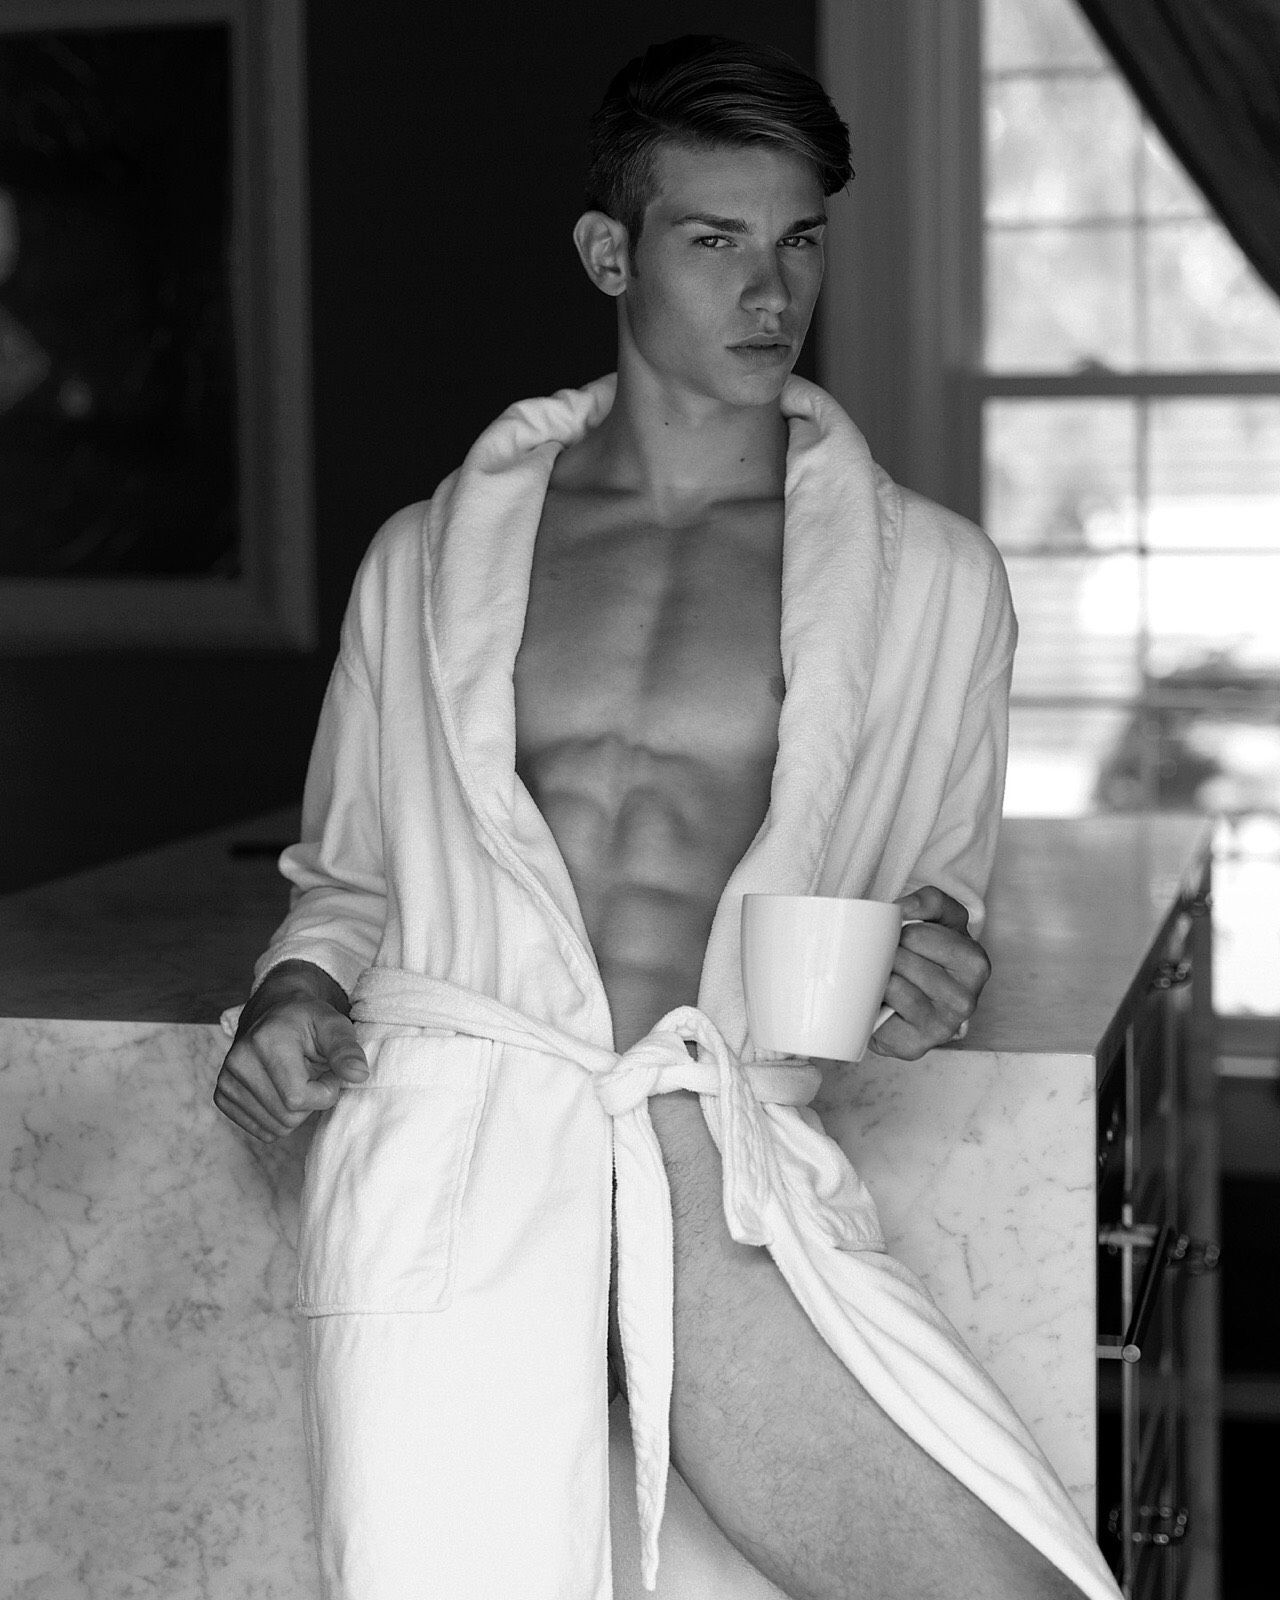 Naked man coffee, nude male model shower